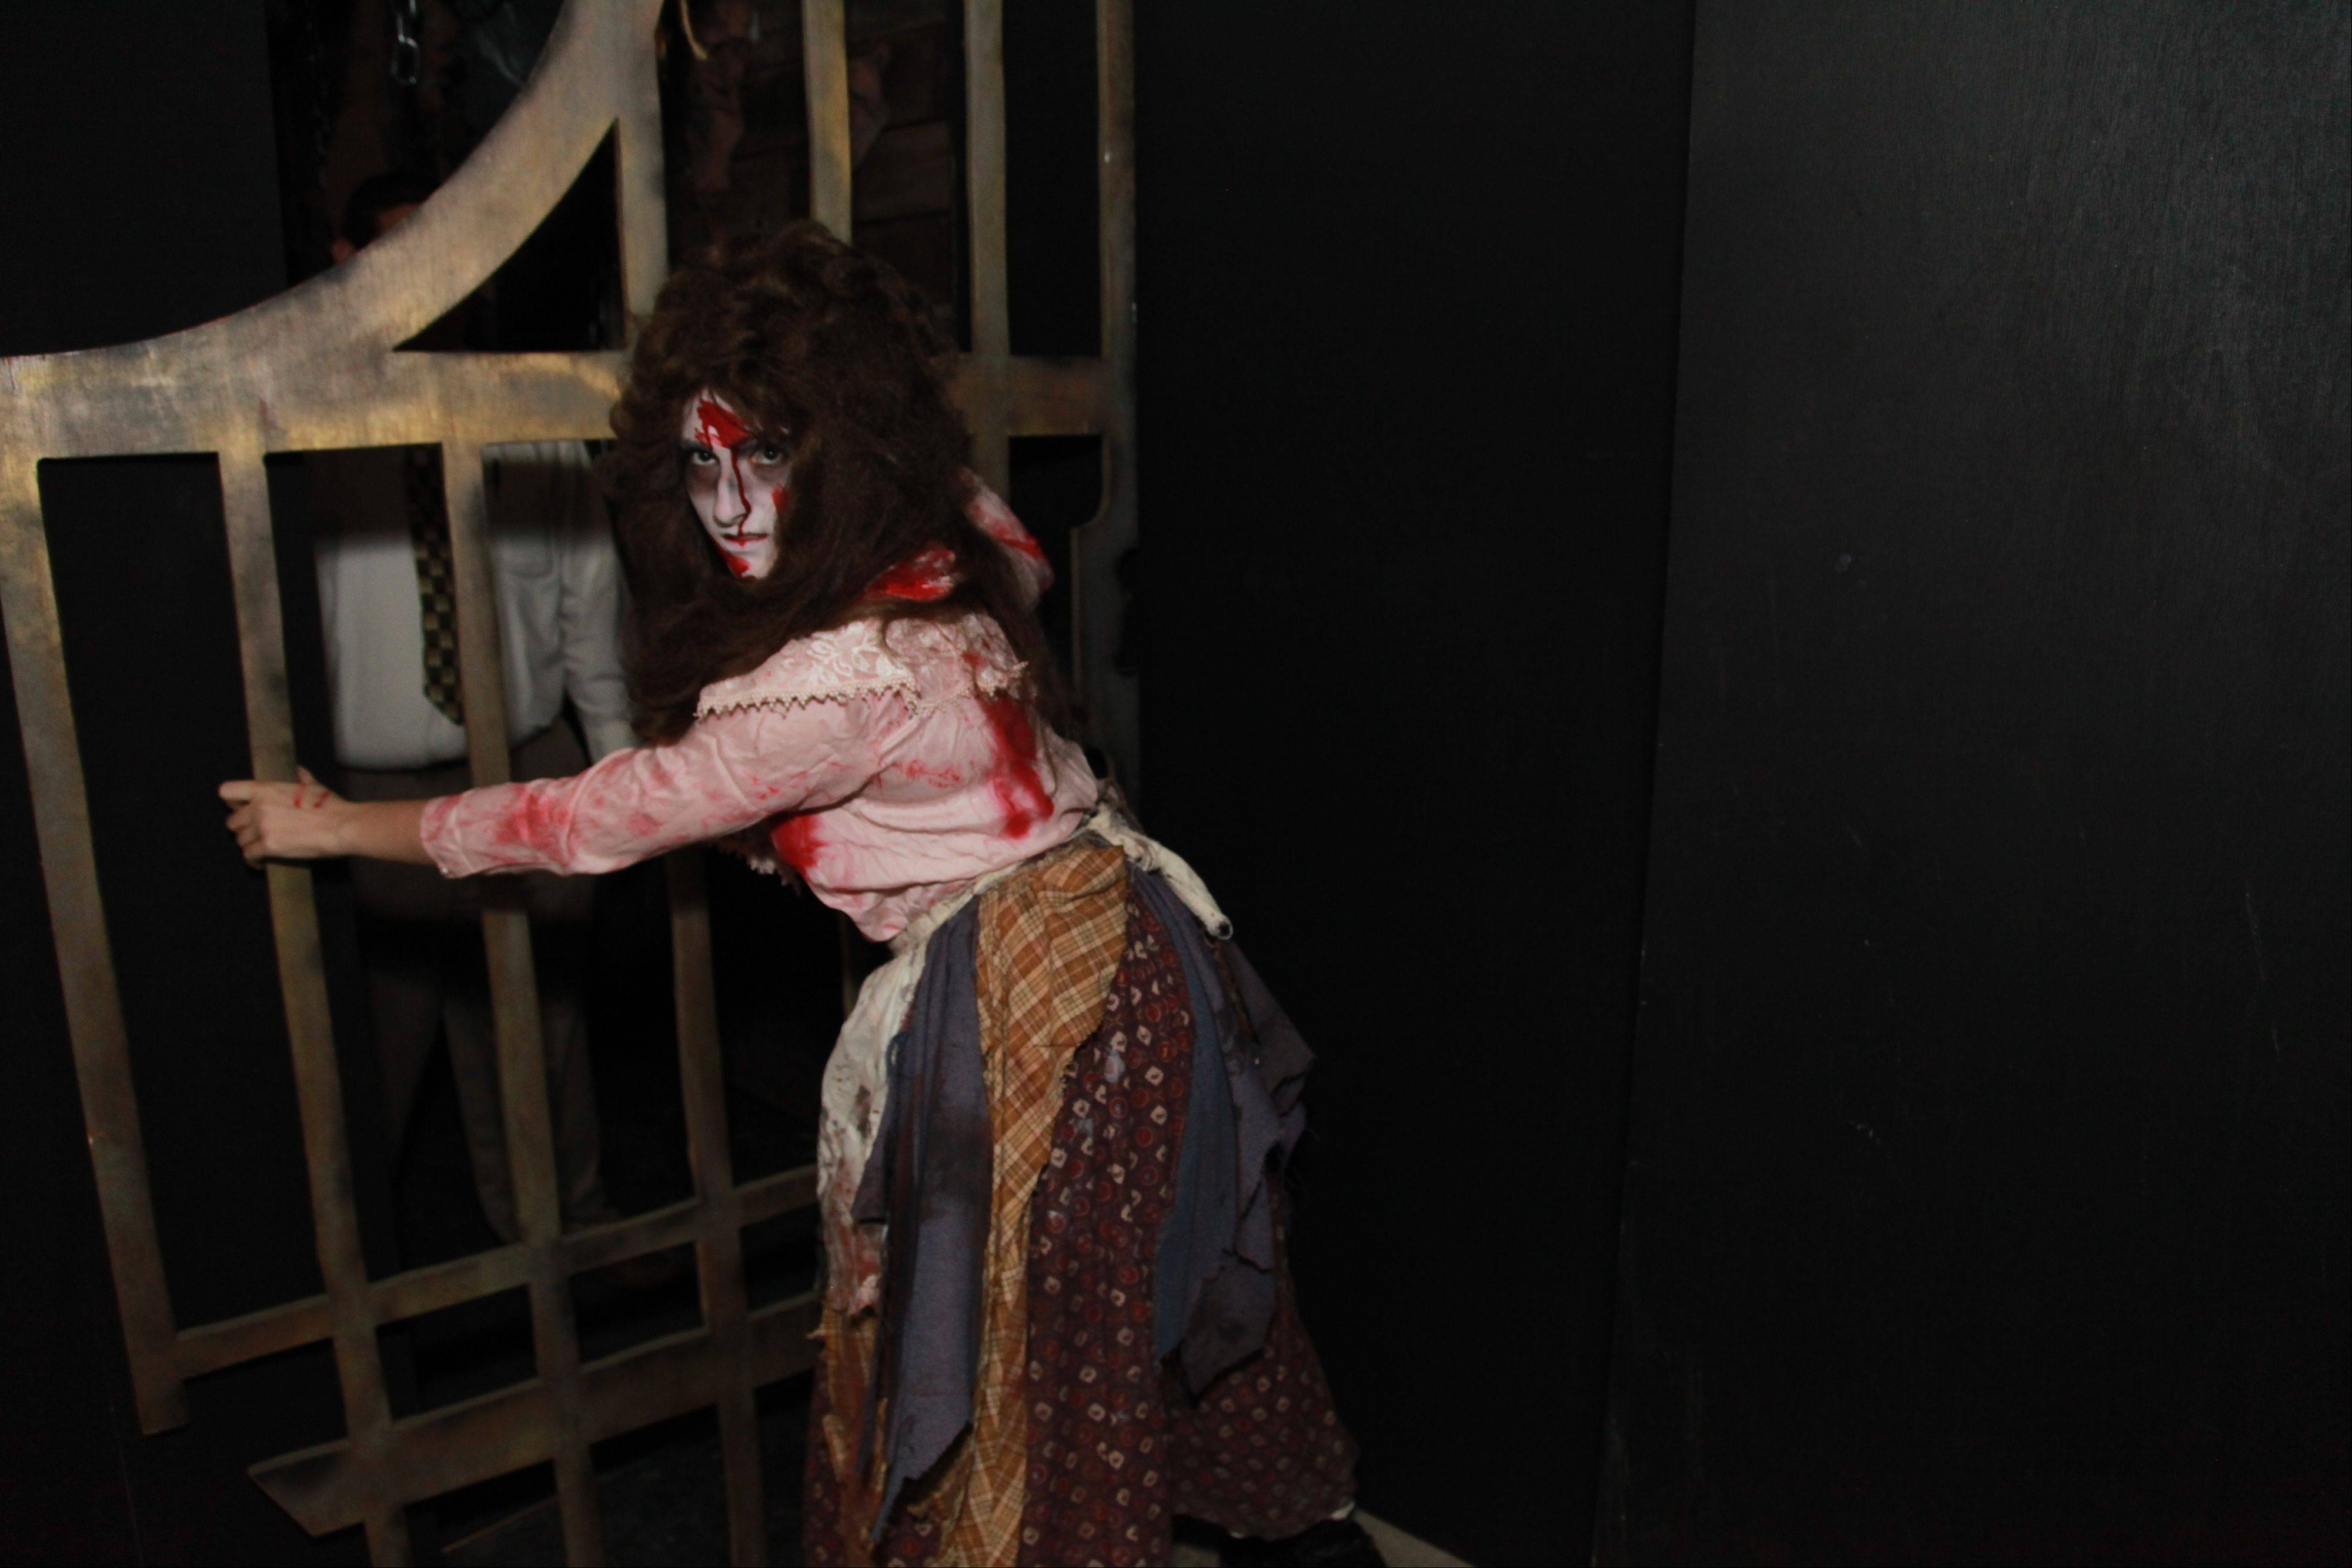 Screams in the Park is one of many elaborate, cinematic and sophisticated haunted houses ready to scare the daylights out of suburbanites this Halloween season.